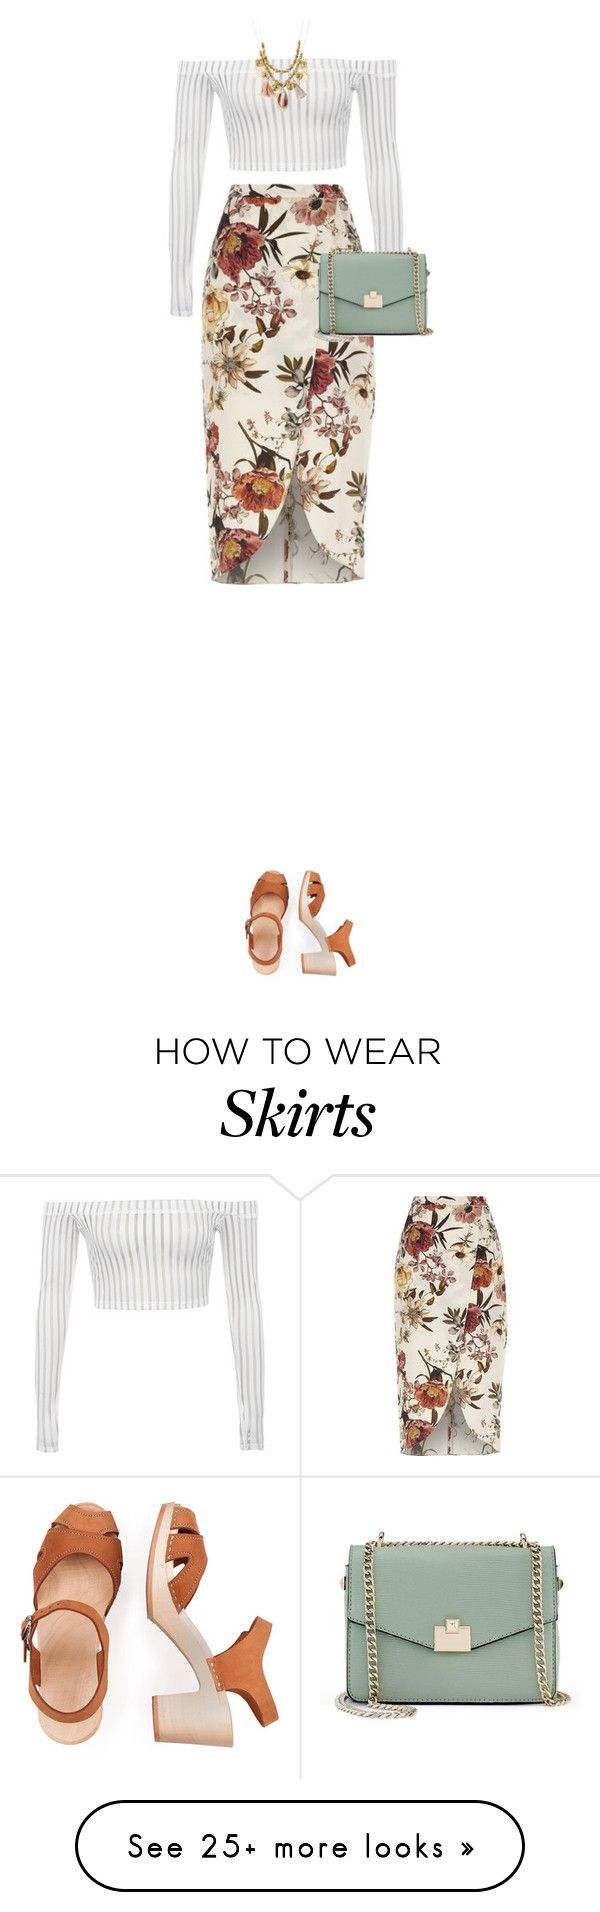 7617 best Outfits with Skirts images on Pinterest | Cgi, Chanel ...